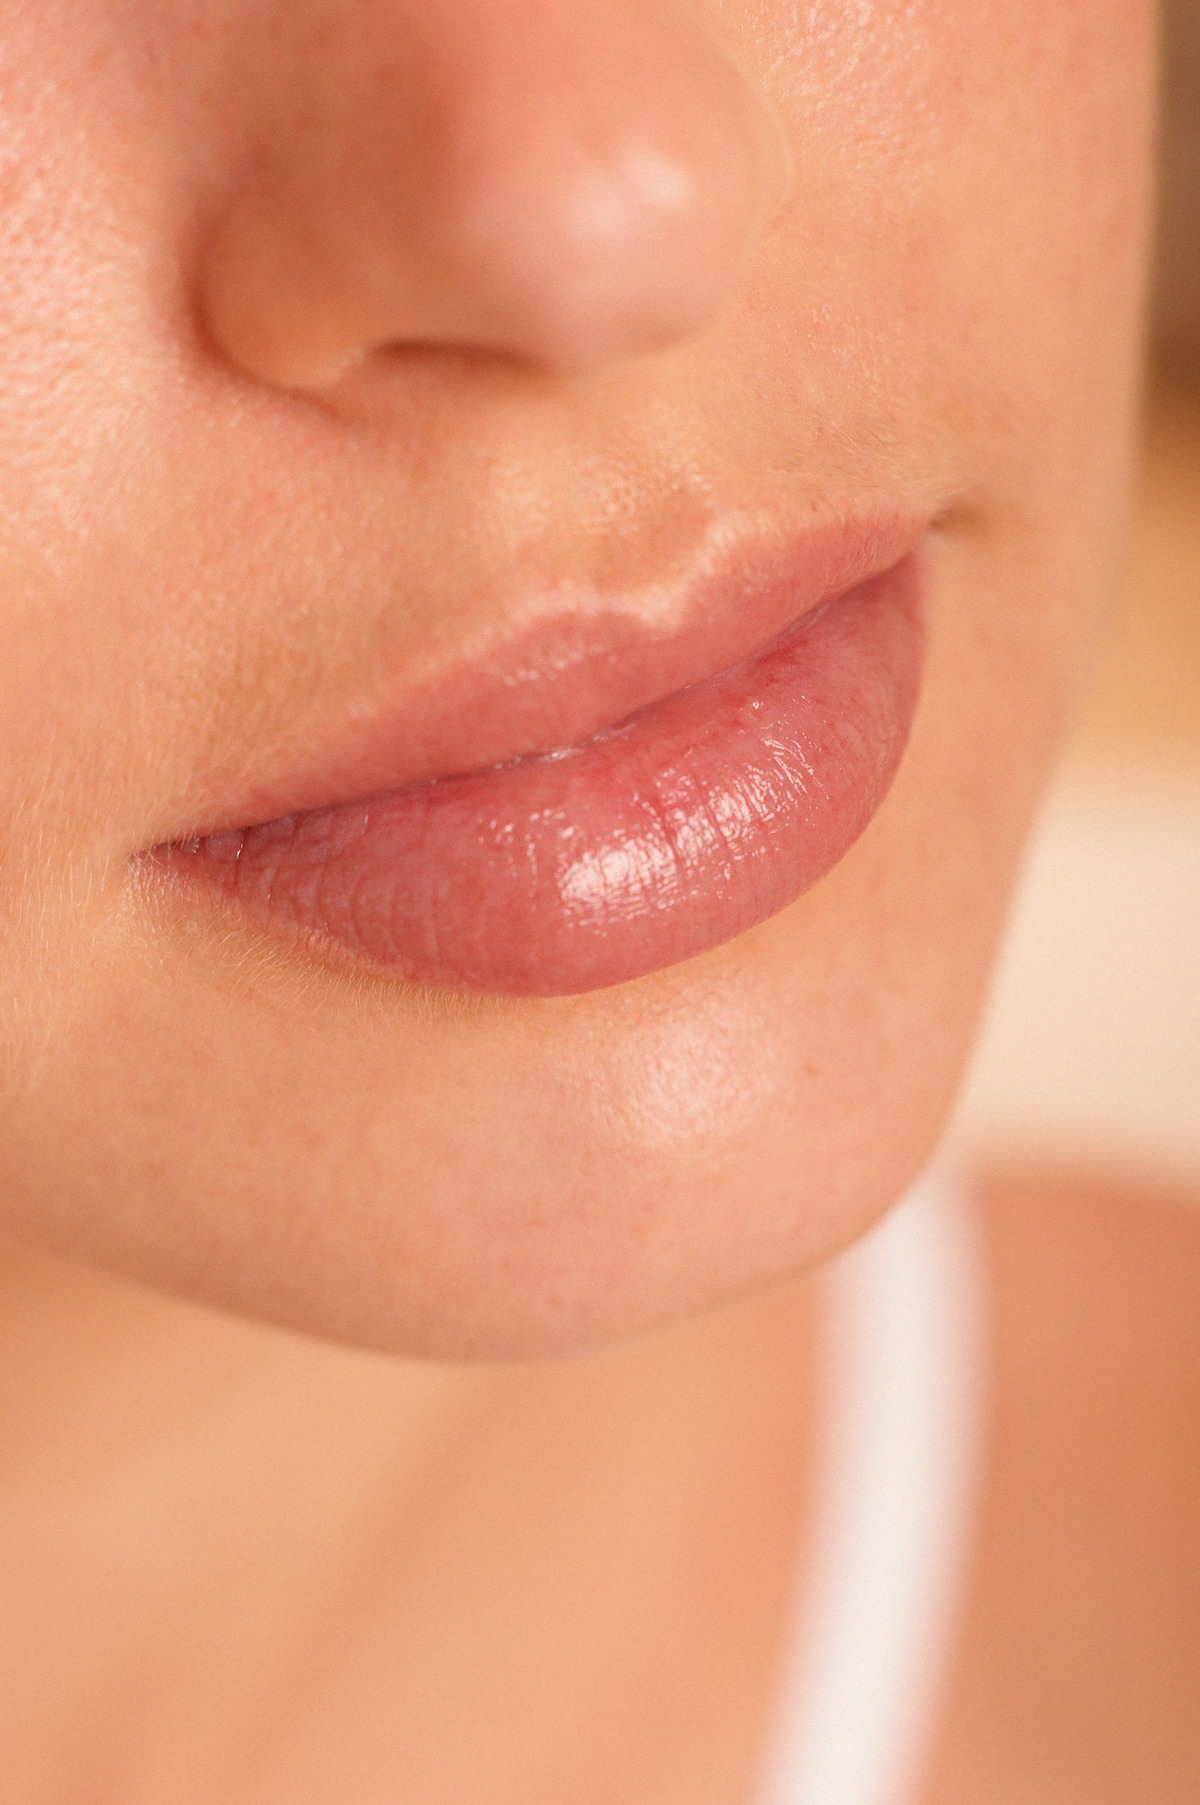 Lips of young woman --- Image by © Image Source/Corbis